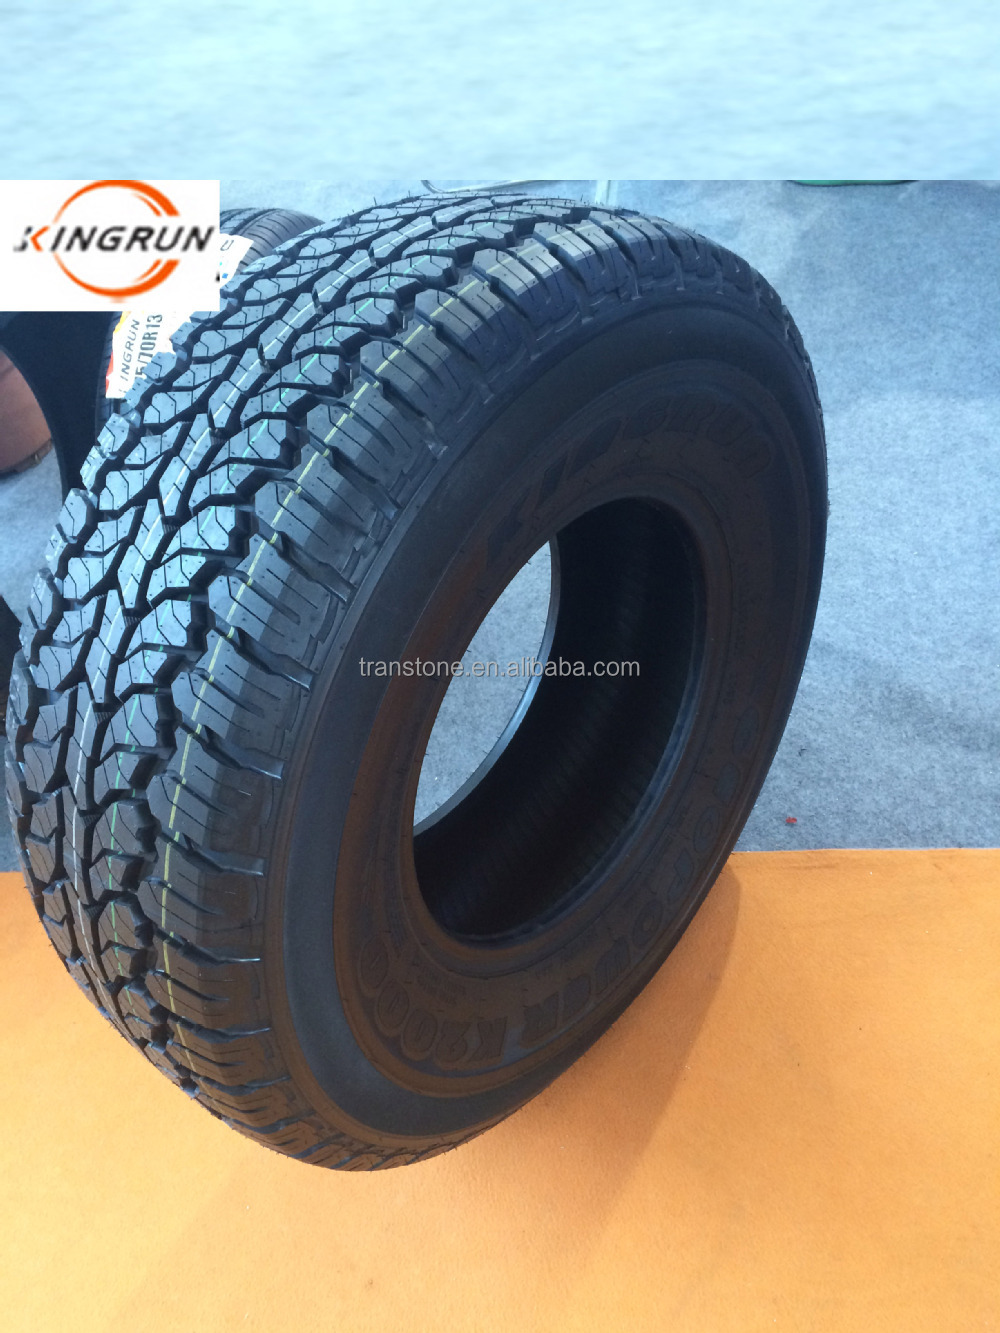 p225/70r16 beach cart tires wholesale used tires colored car tires 4x4